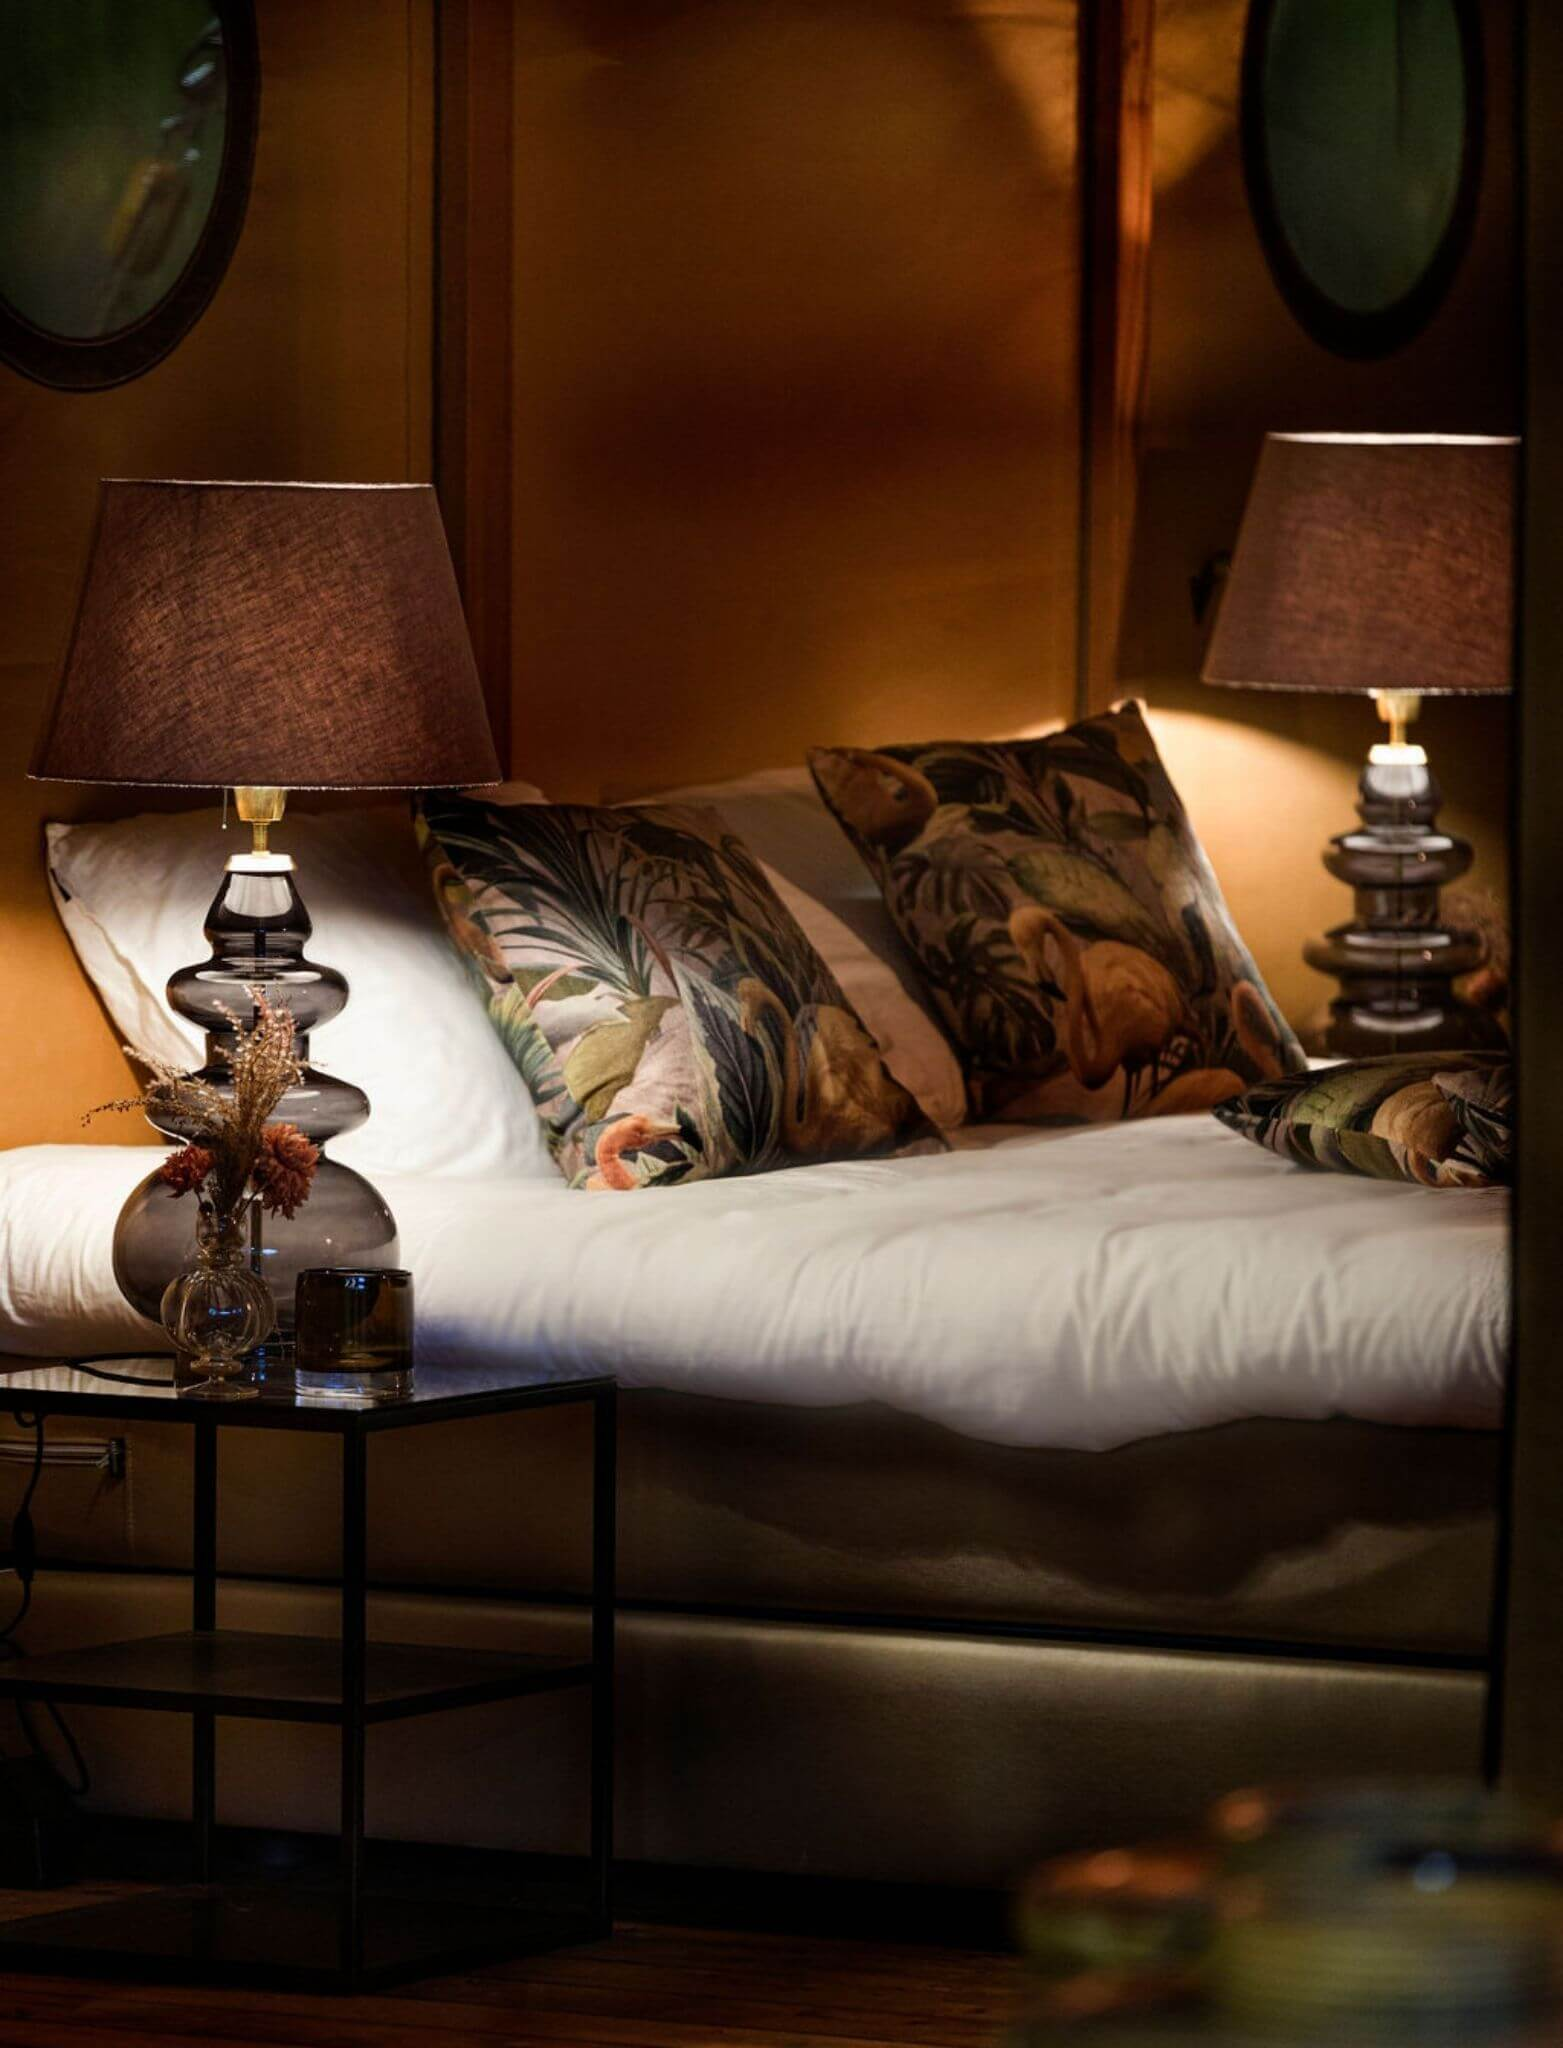 YALA_bedroom_detail_by_night_interior_Pristine